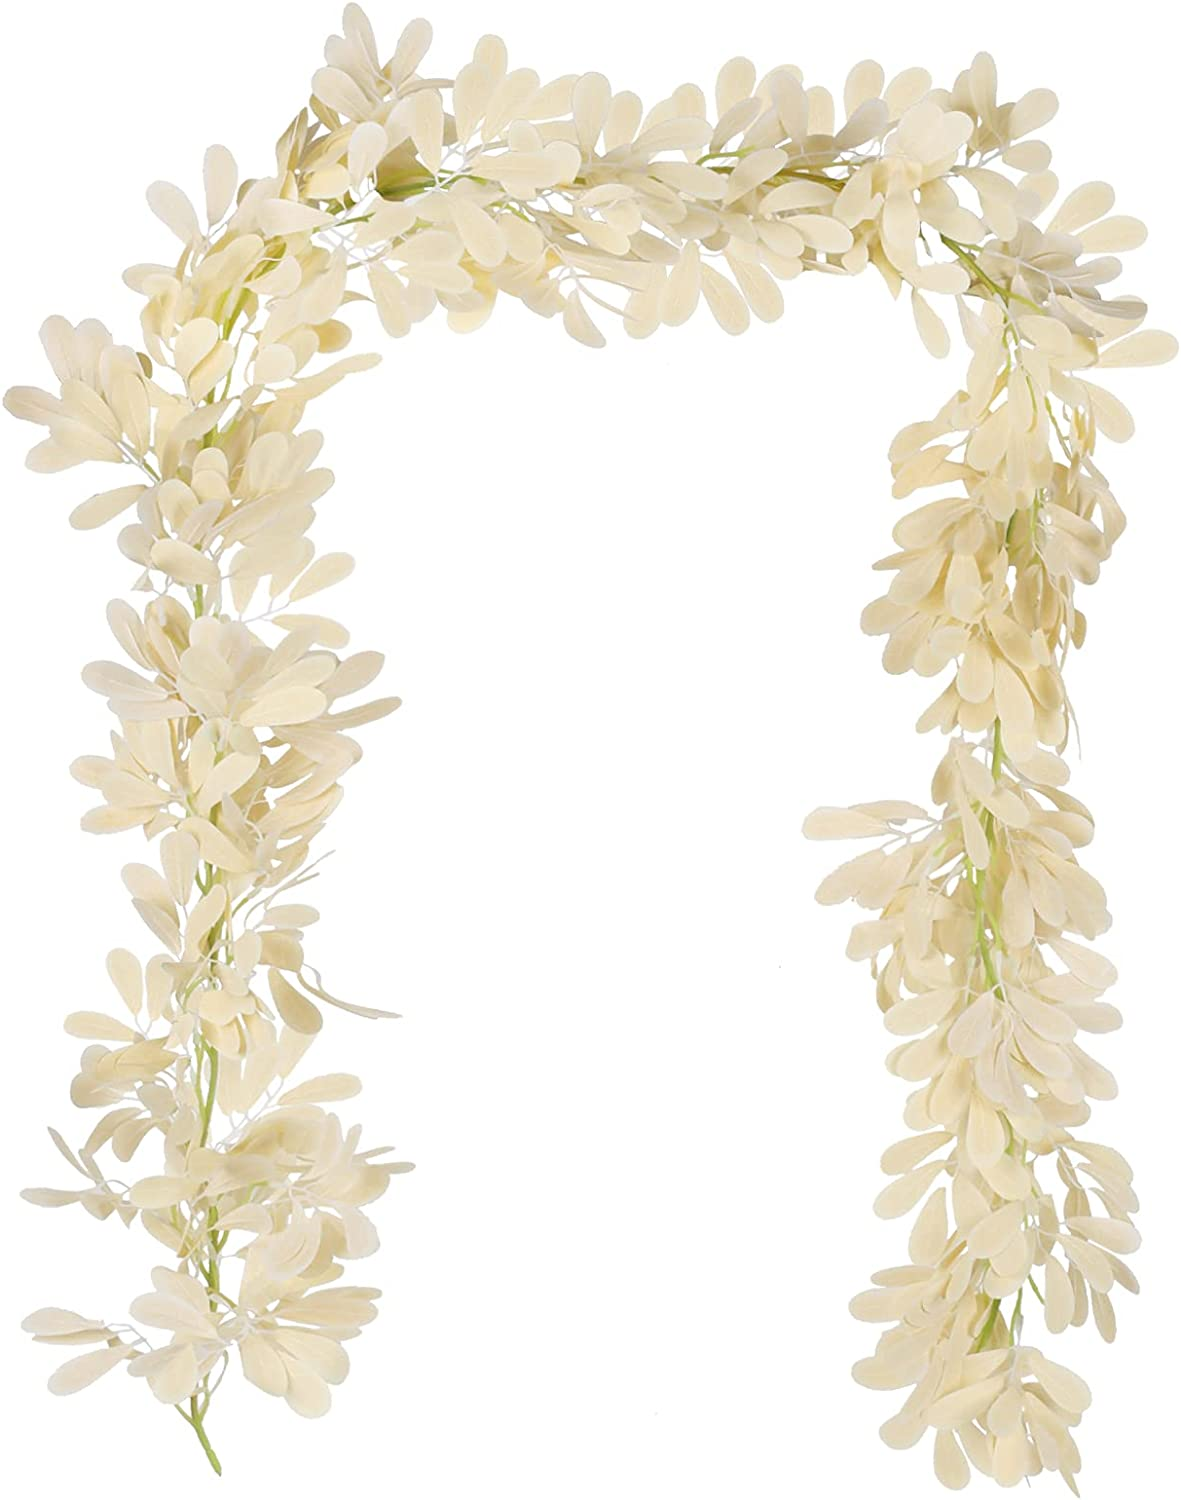 Free shipping Now free shipping XHXSTORE Artificial Lambs Ear Leaf Plant Vines Garlands Art